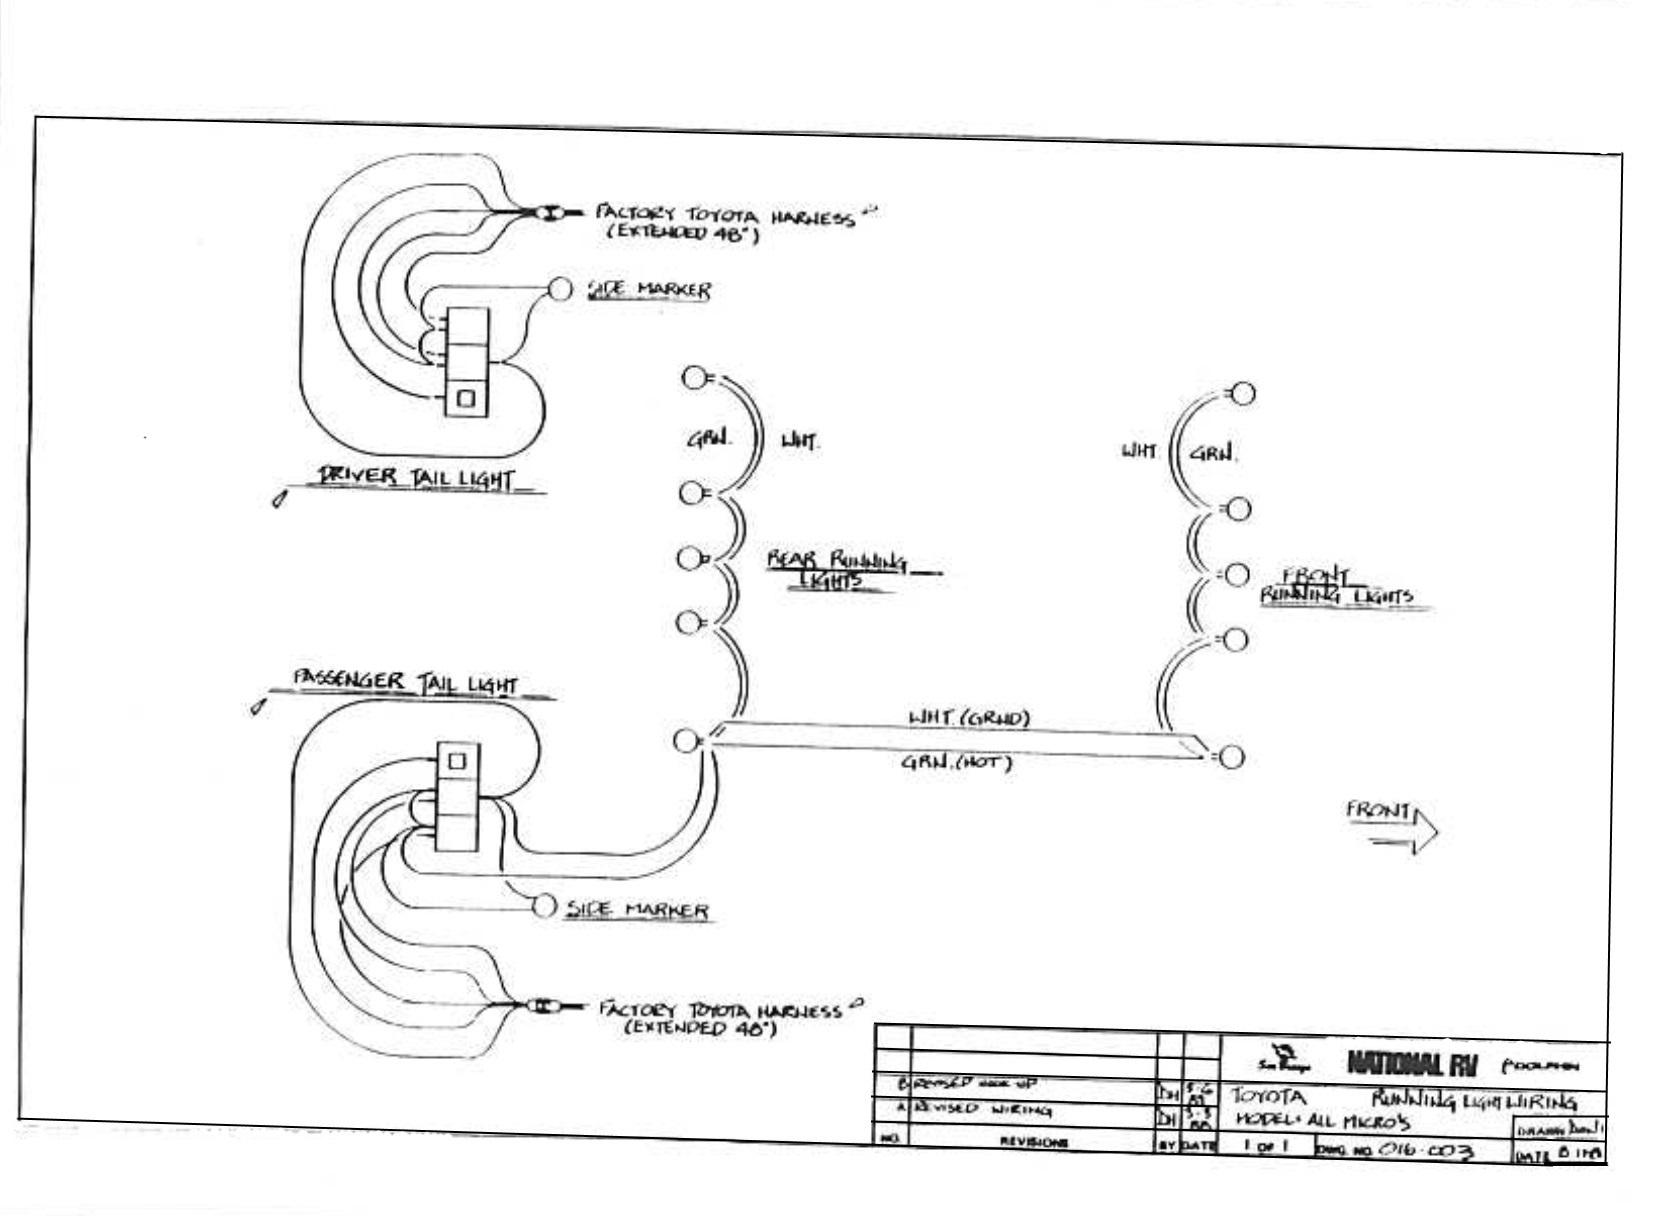 hight resolution of 93 dolphin clearance light wiring jpg